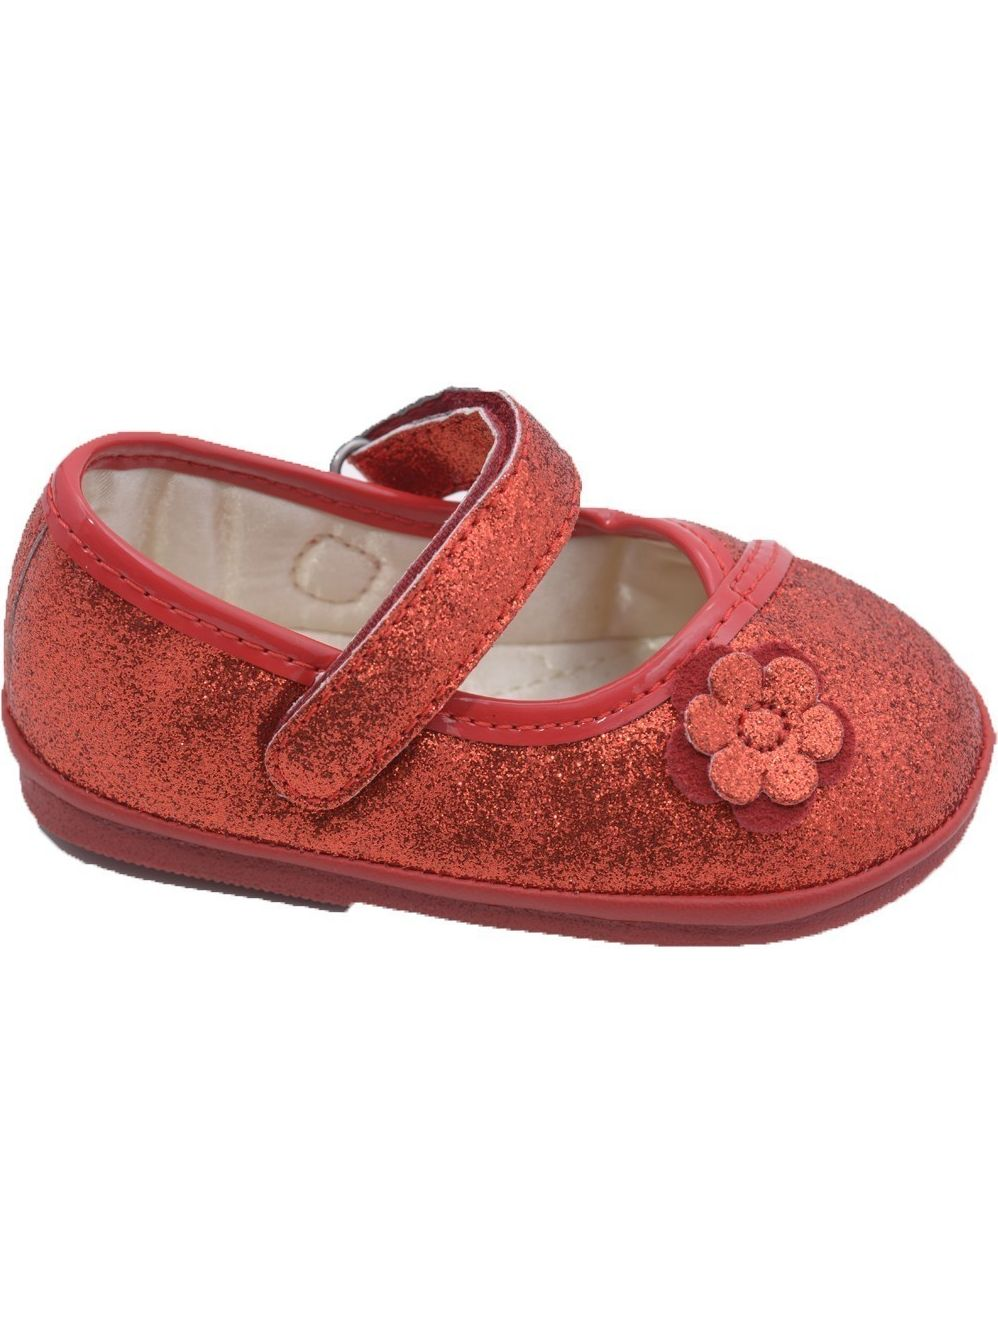 Angel Girls Glitter Red Flower Kimono Velcro Strap Mary Jane Shoes 1-3 Baby